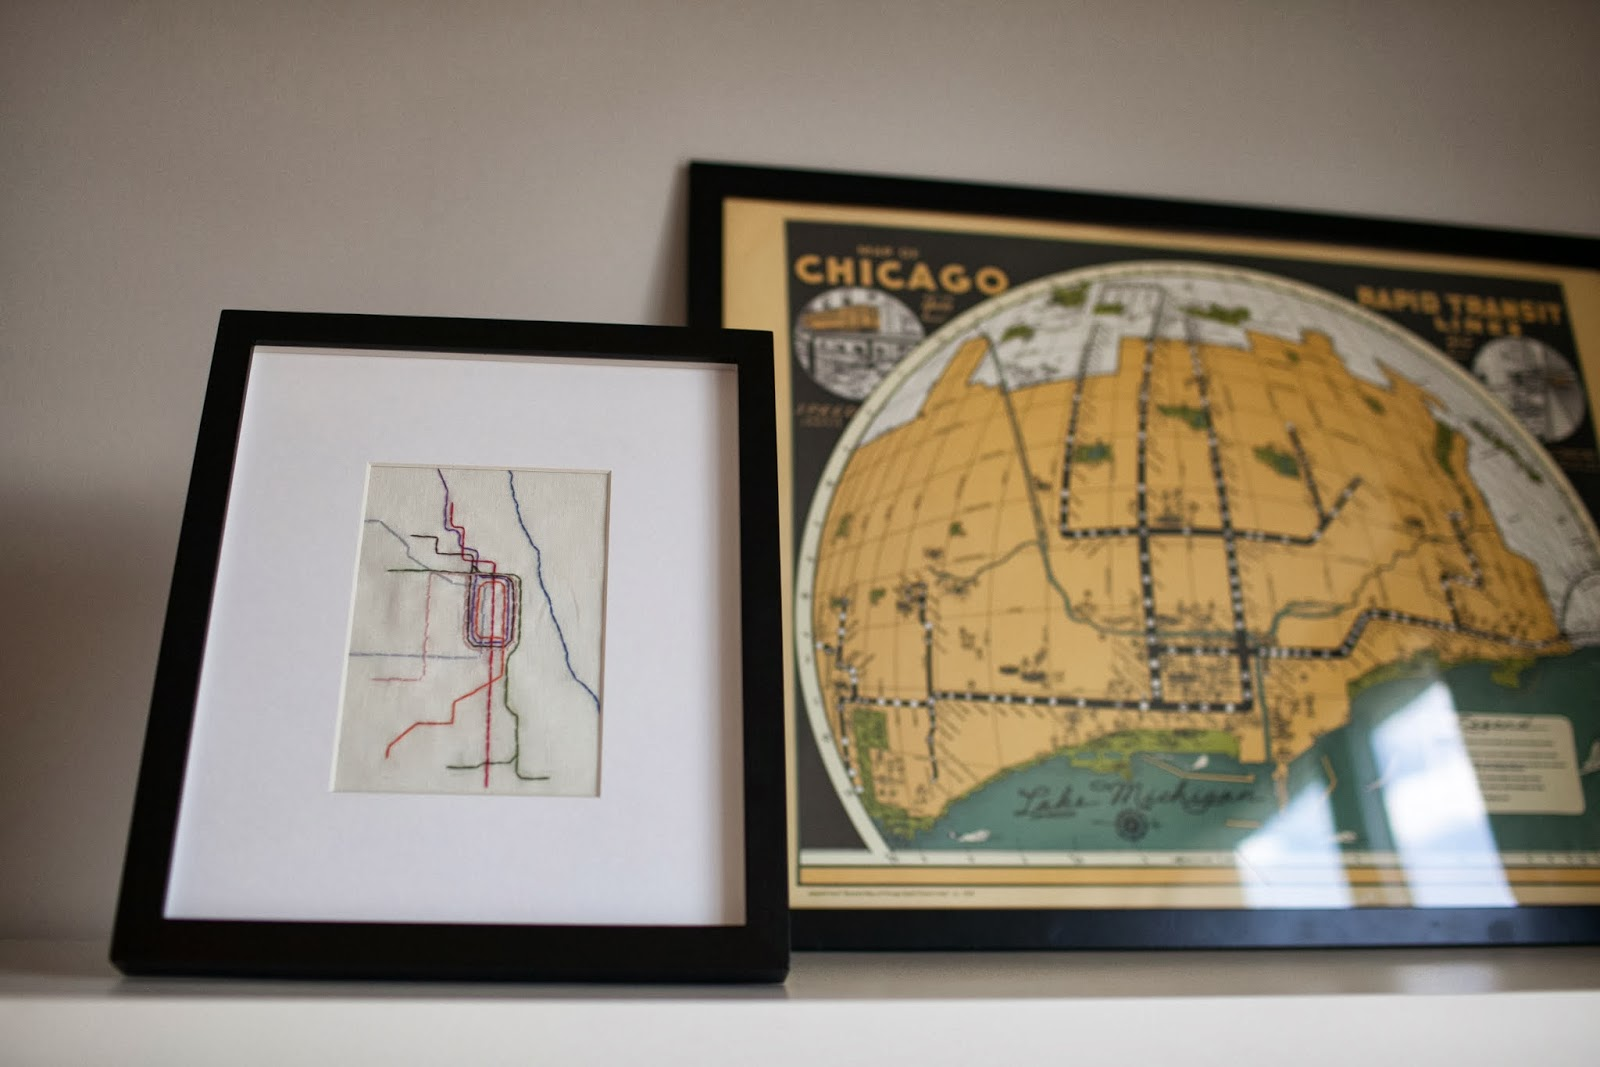 City lights nursery tour maps above the bookshelf the large yellow map is a vintage map of the chicago transit system also purchased at posh the small embroidered one is a map gumiabroncs Choice Image